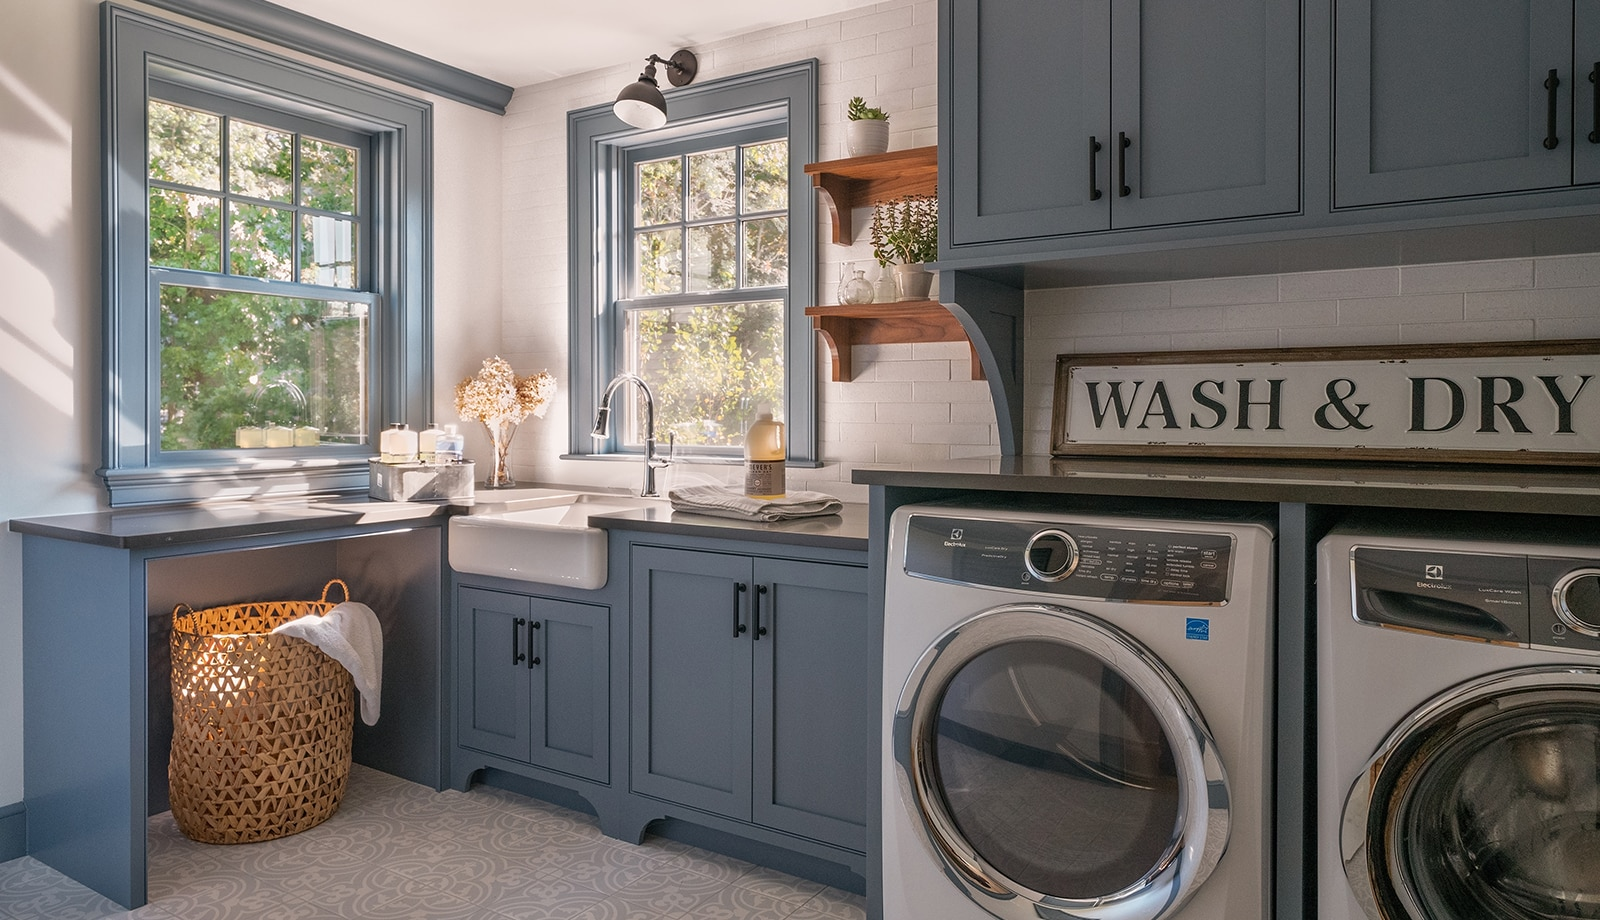 Farmhouse Flair Interiors Ipswich MA Laundry Room featured